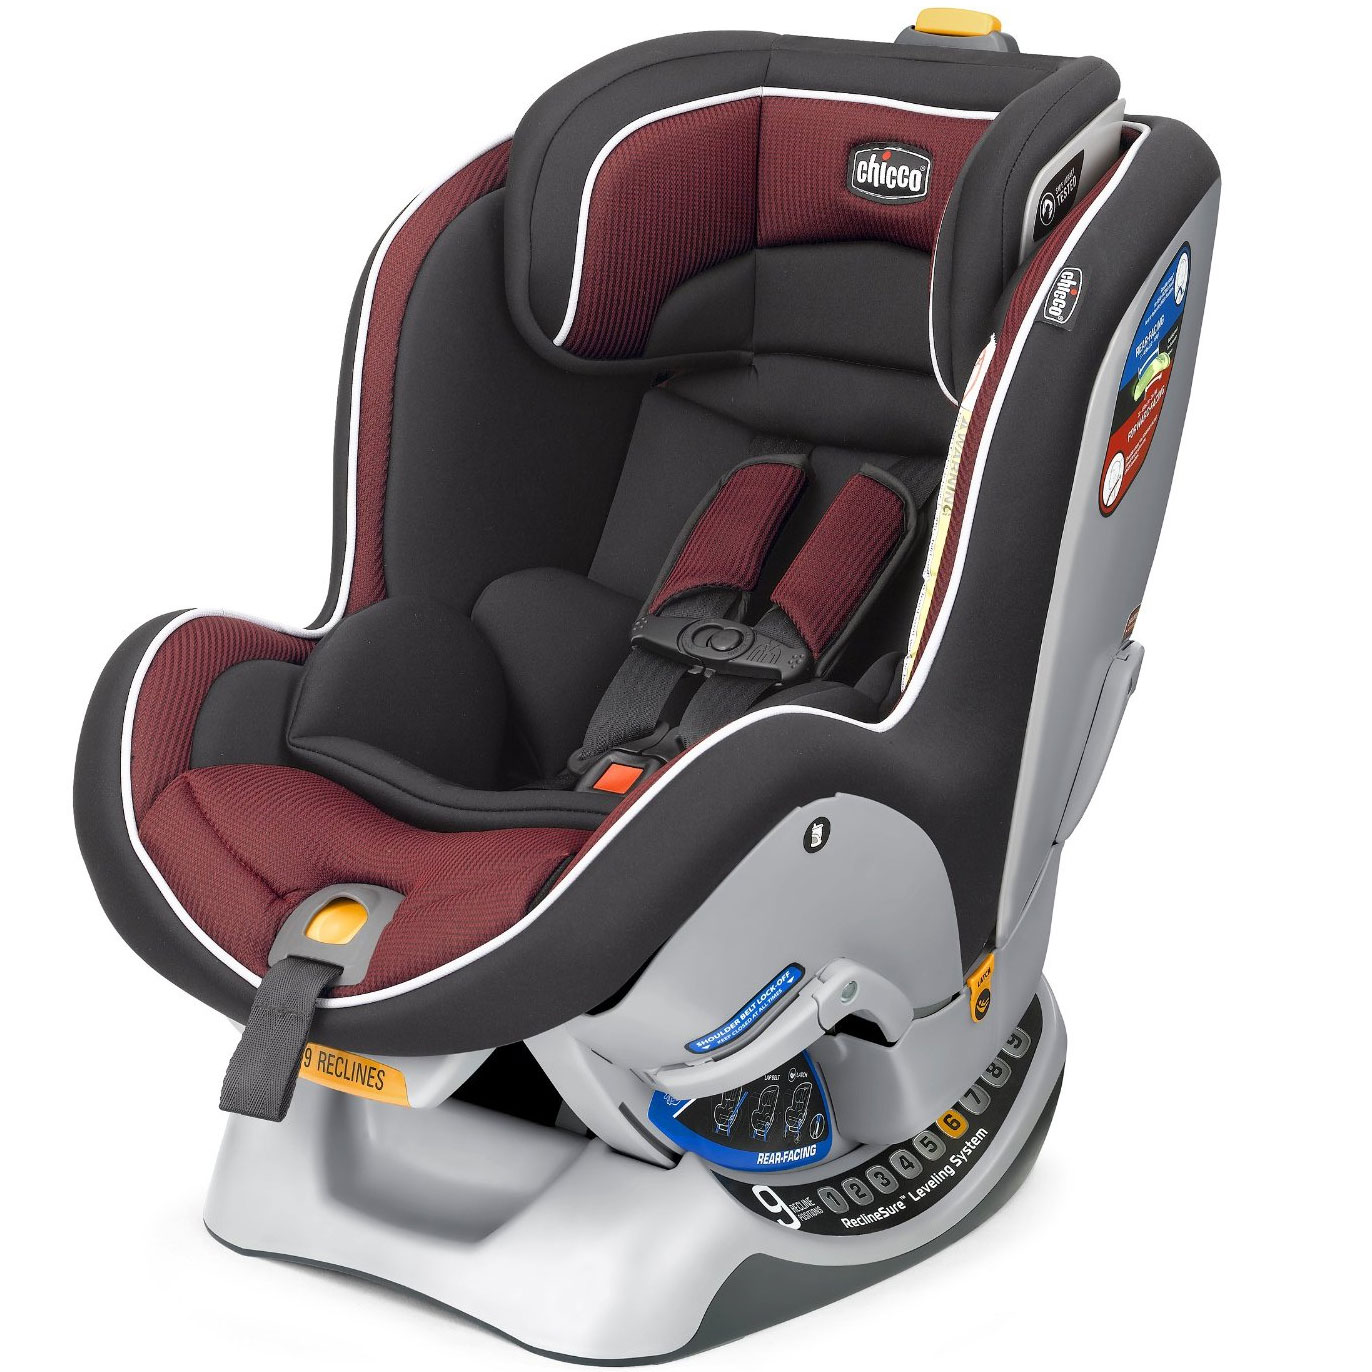 Chicco Nextfit Zip Car Seat Covers